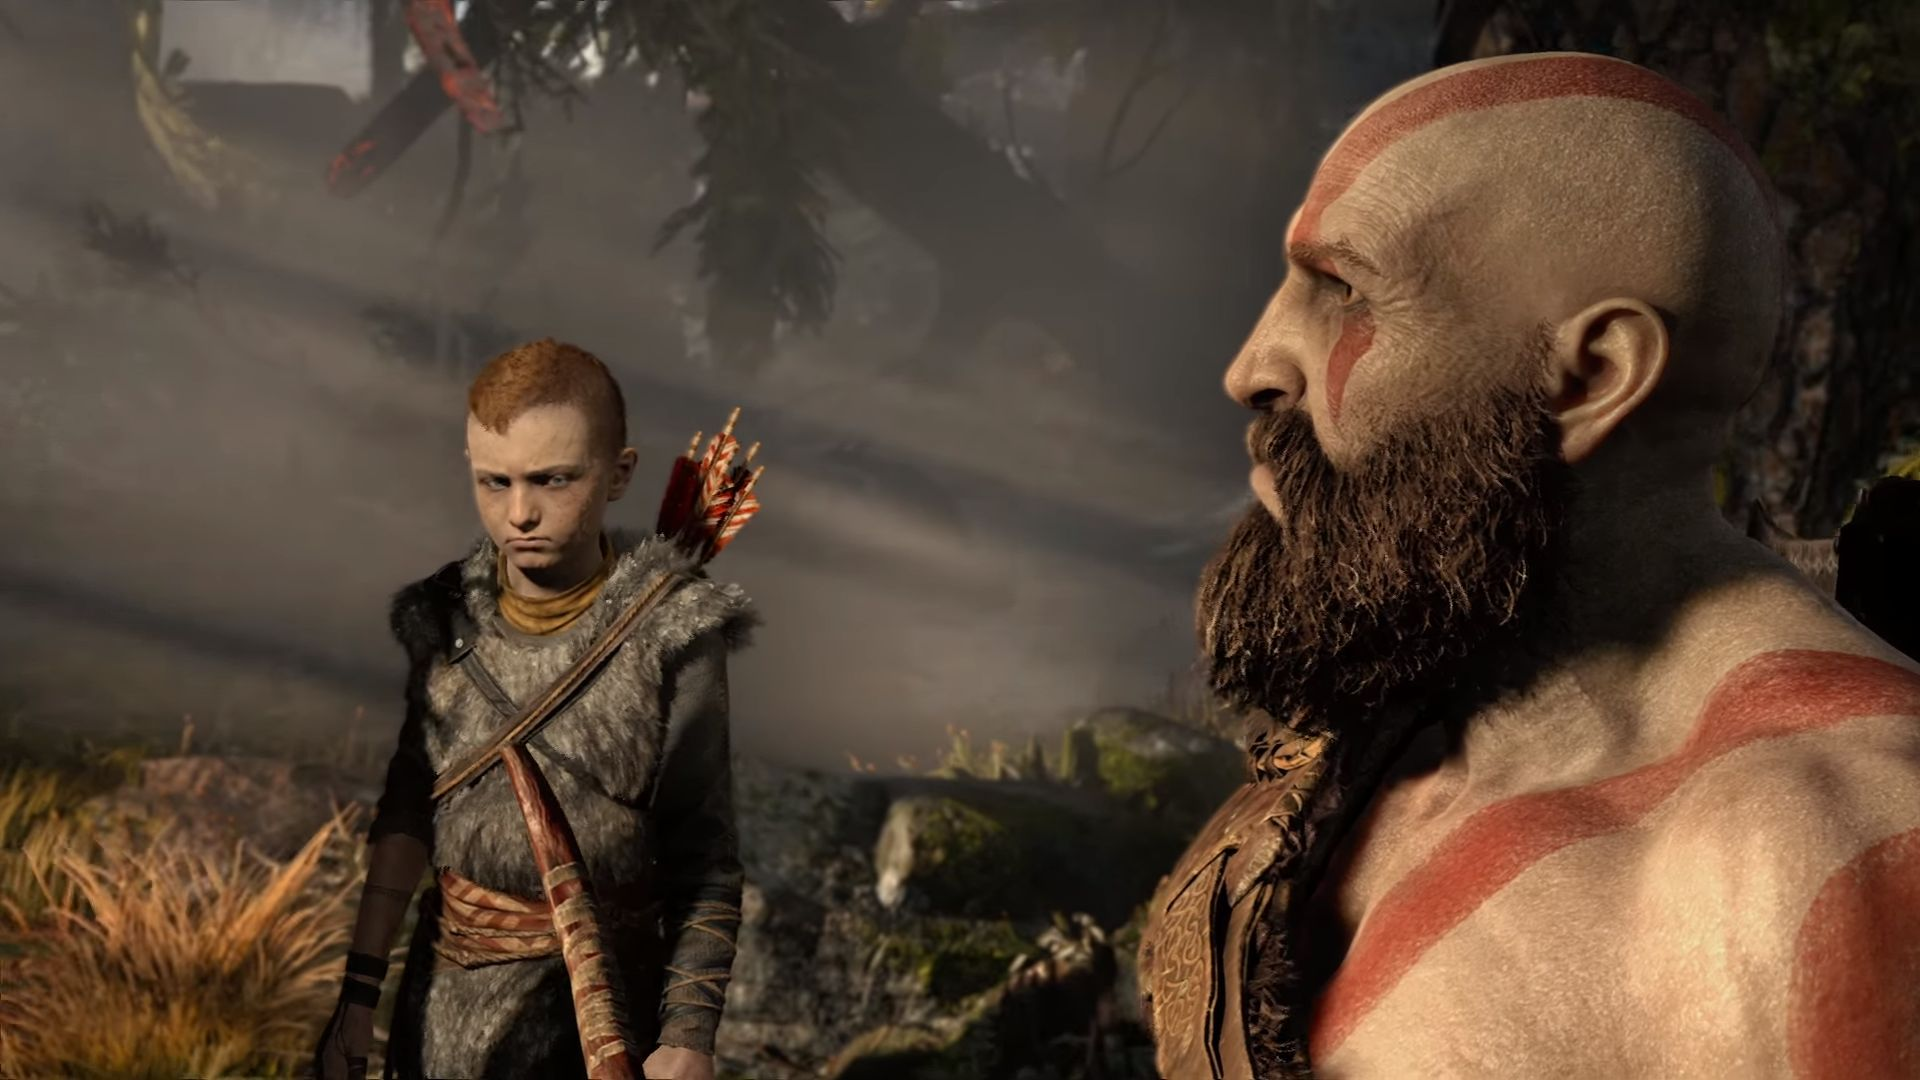 God of war 3 sex mini game